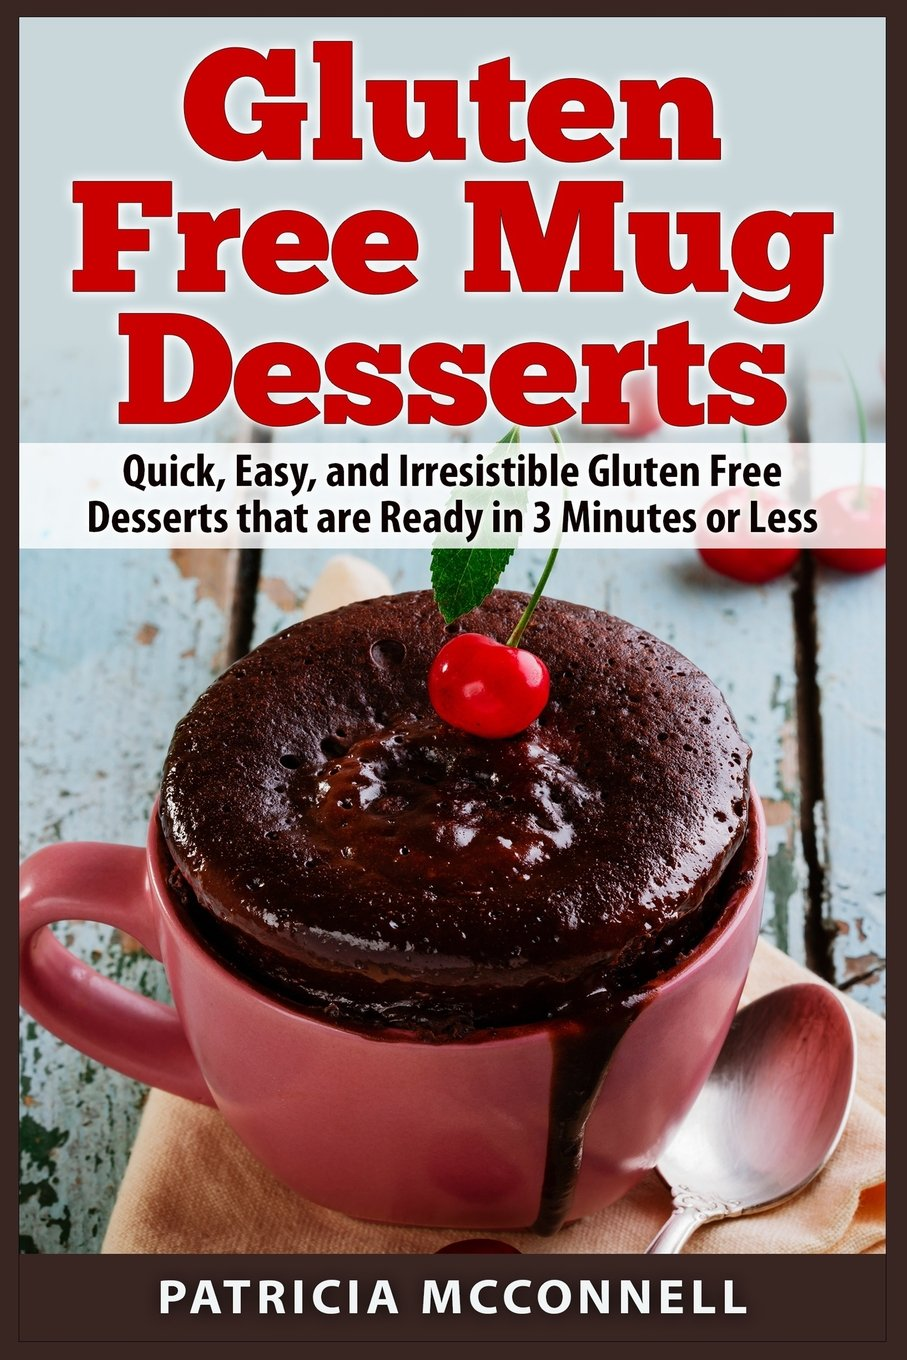 Read Online Gluten Free Mug Desserts: Quick, Easy, and Irresistable Gluten Free Desserts that are Ready in 3 Minutes or Less PDF